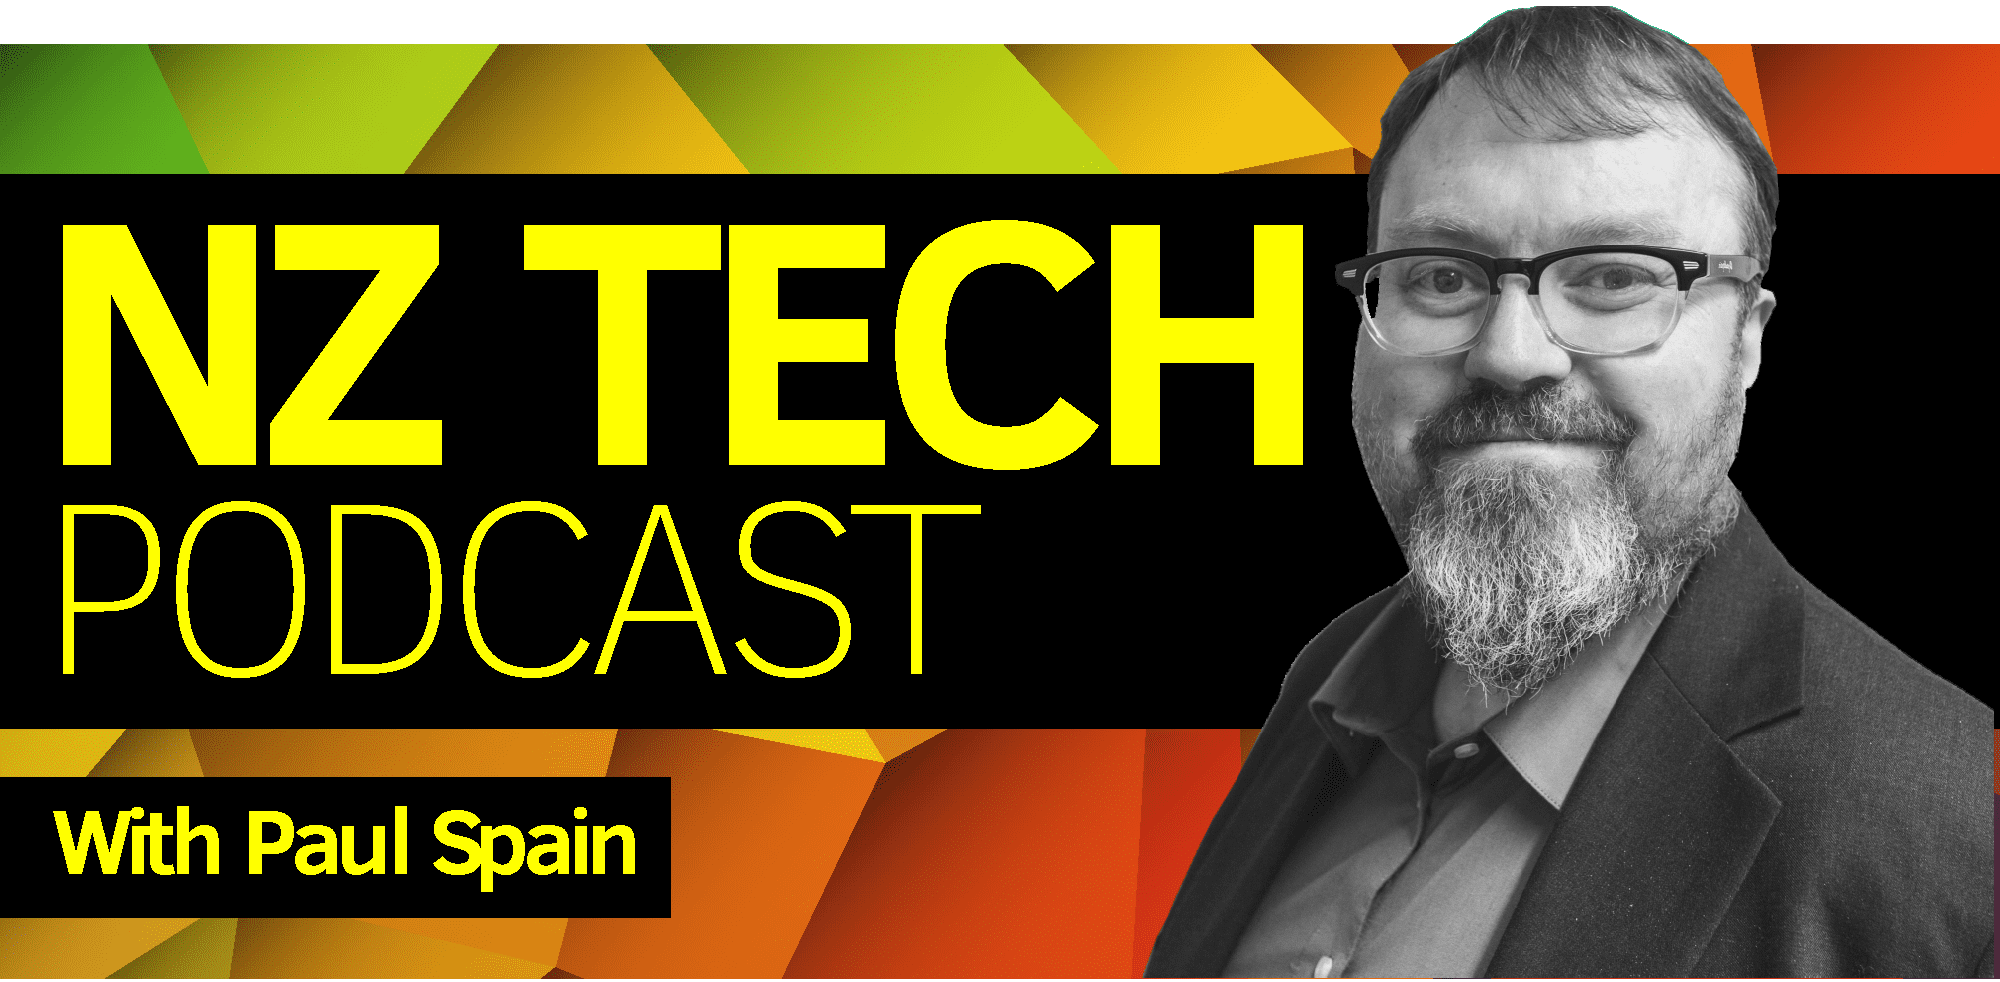 nz-tech-podcast-logo-v2